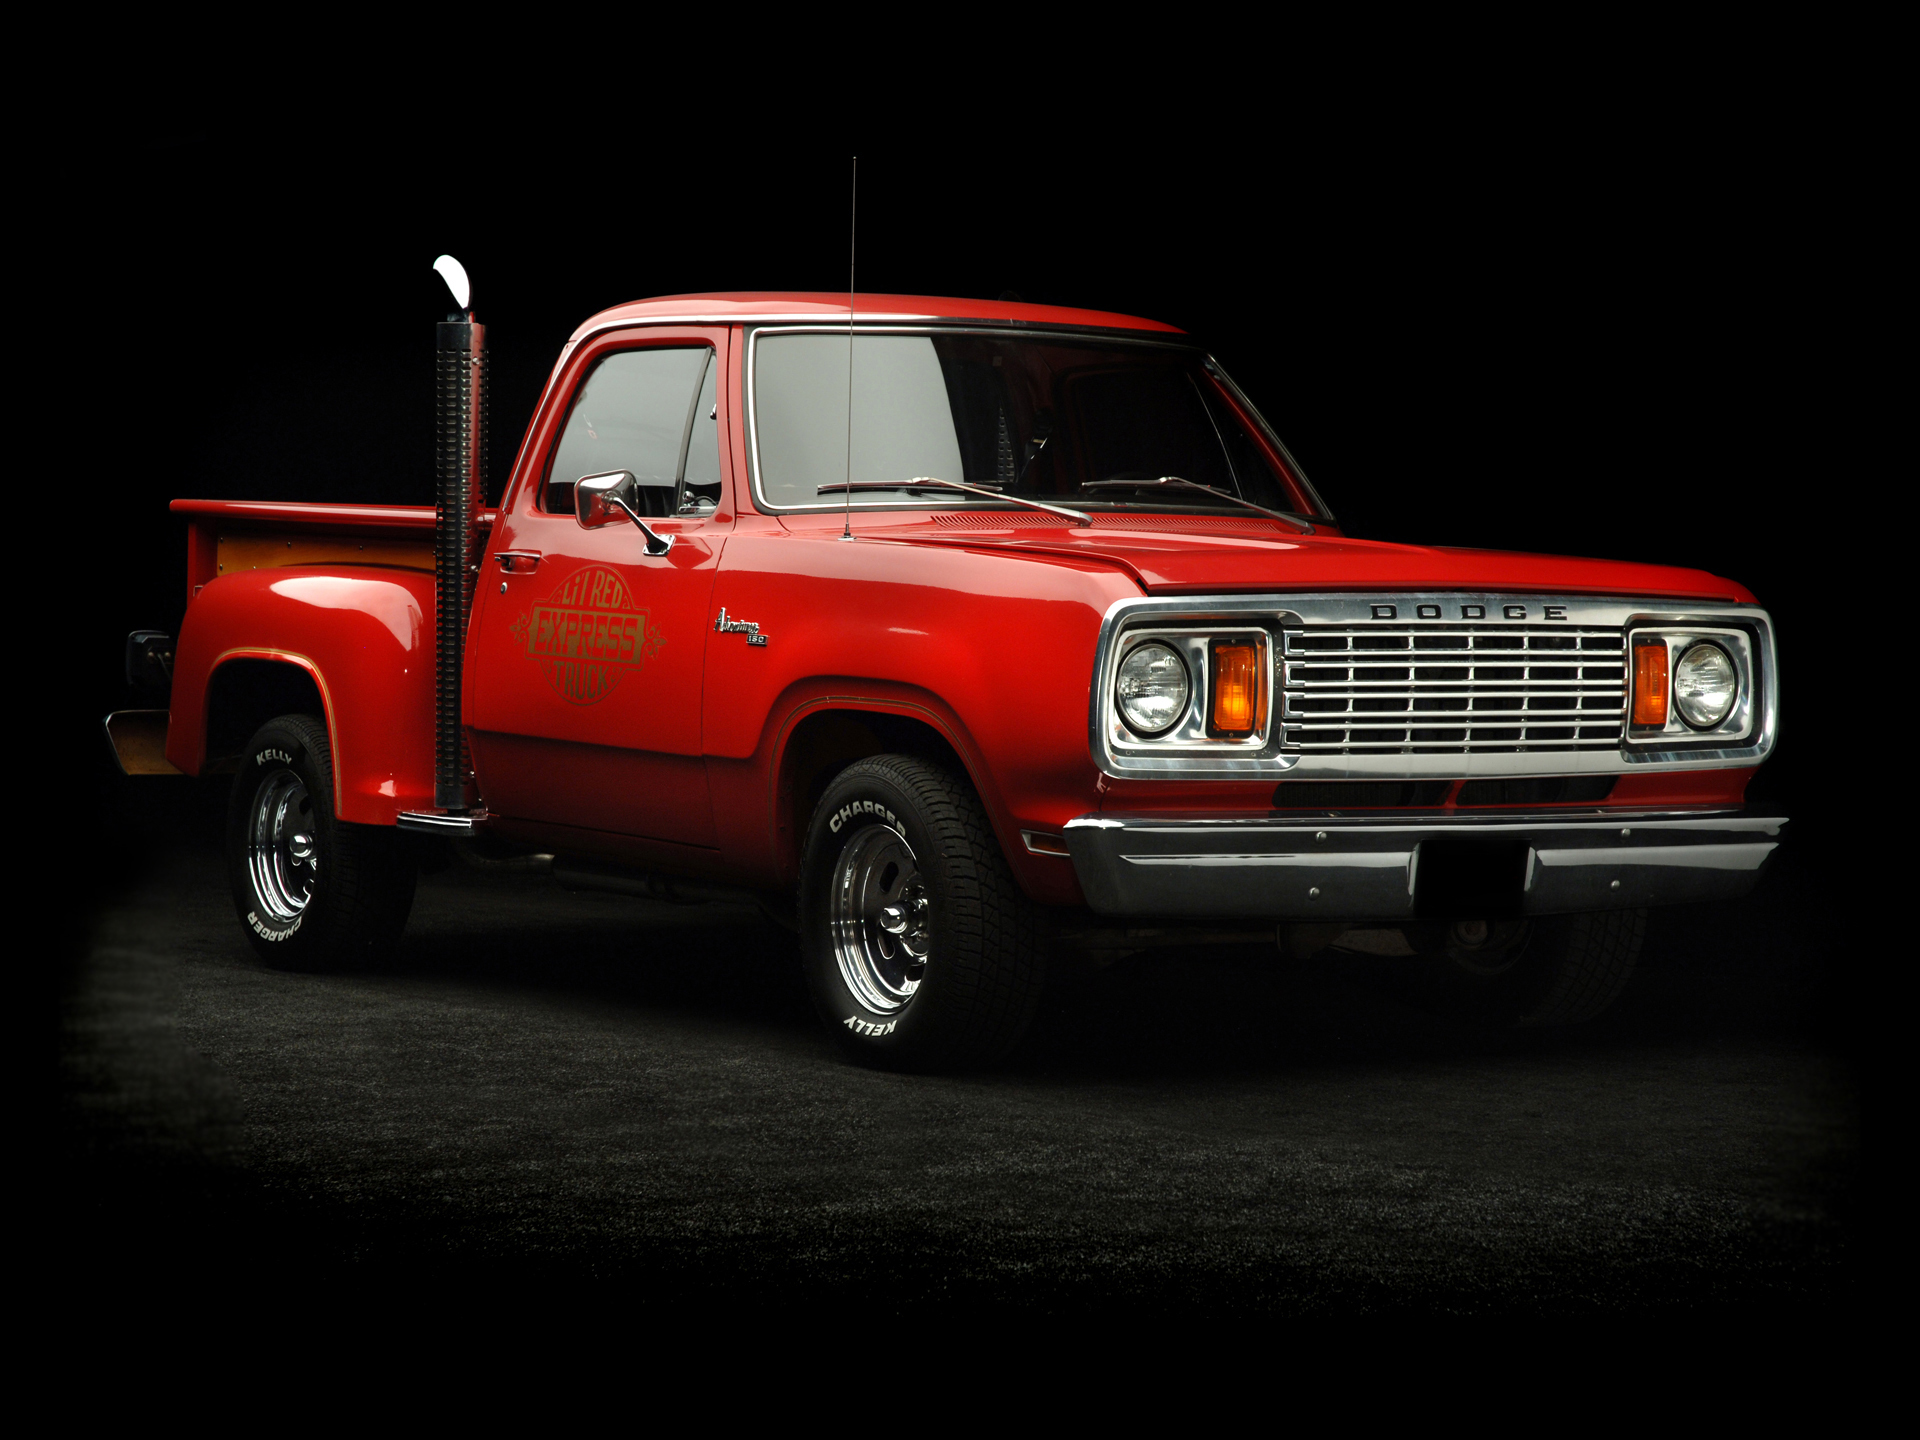 1978 Dodge Adventurer Lil Red Express Truck pickup hot rod rods 1920x1440